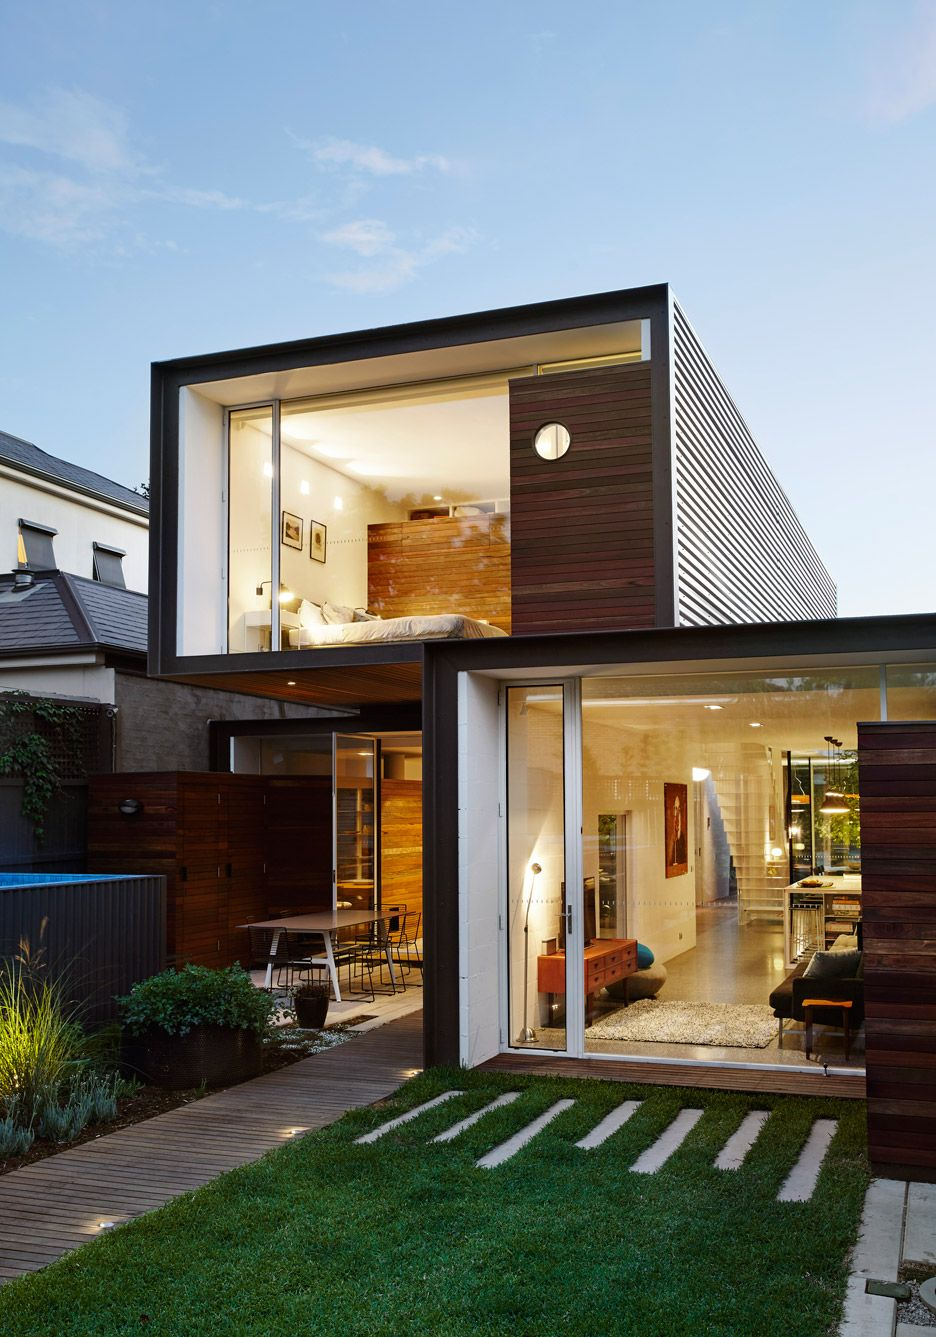 A Trio Of Glass Ended Boxes Forms This Compact Melbourne House By Austin  Maynard Architects